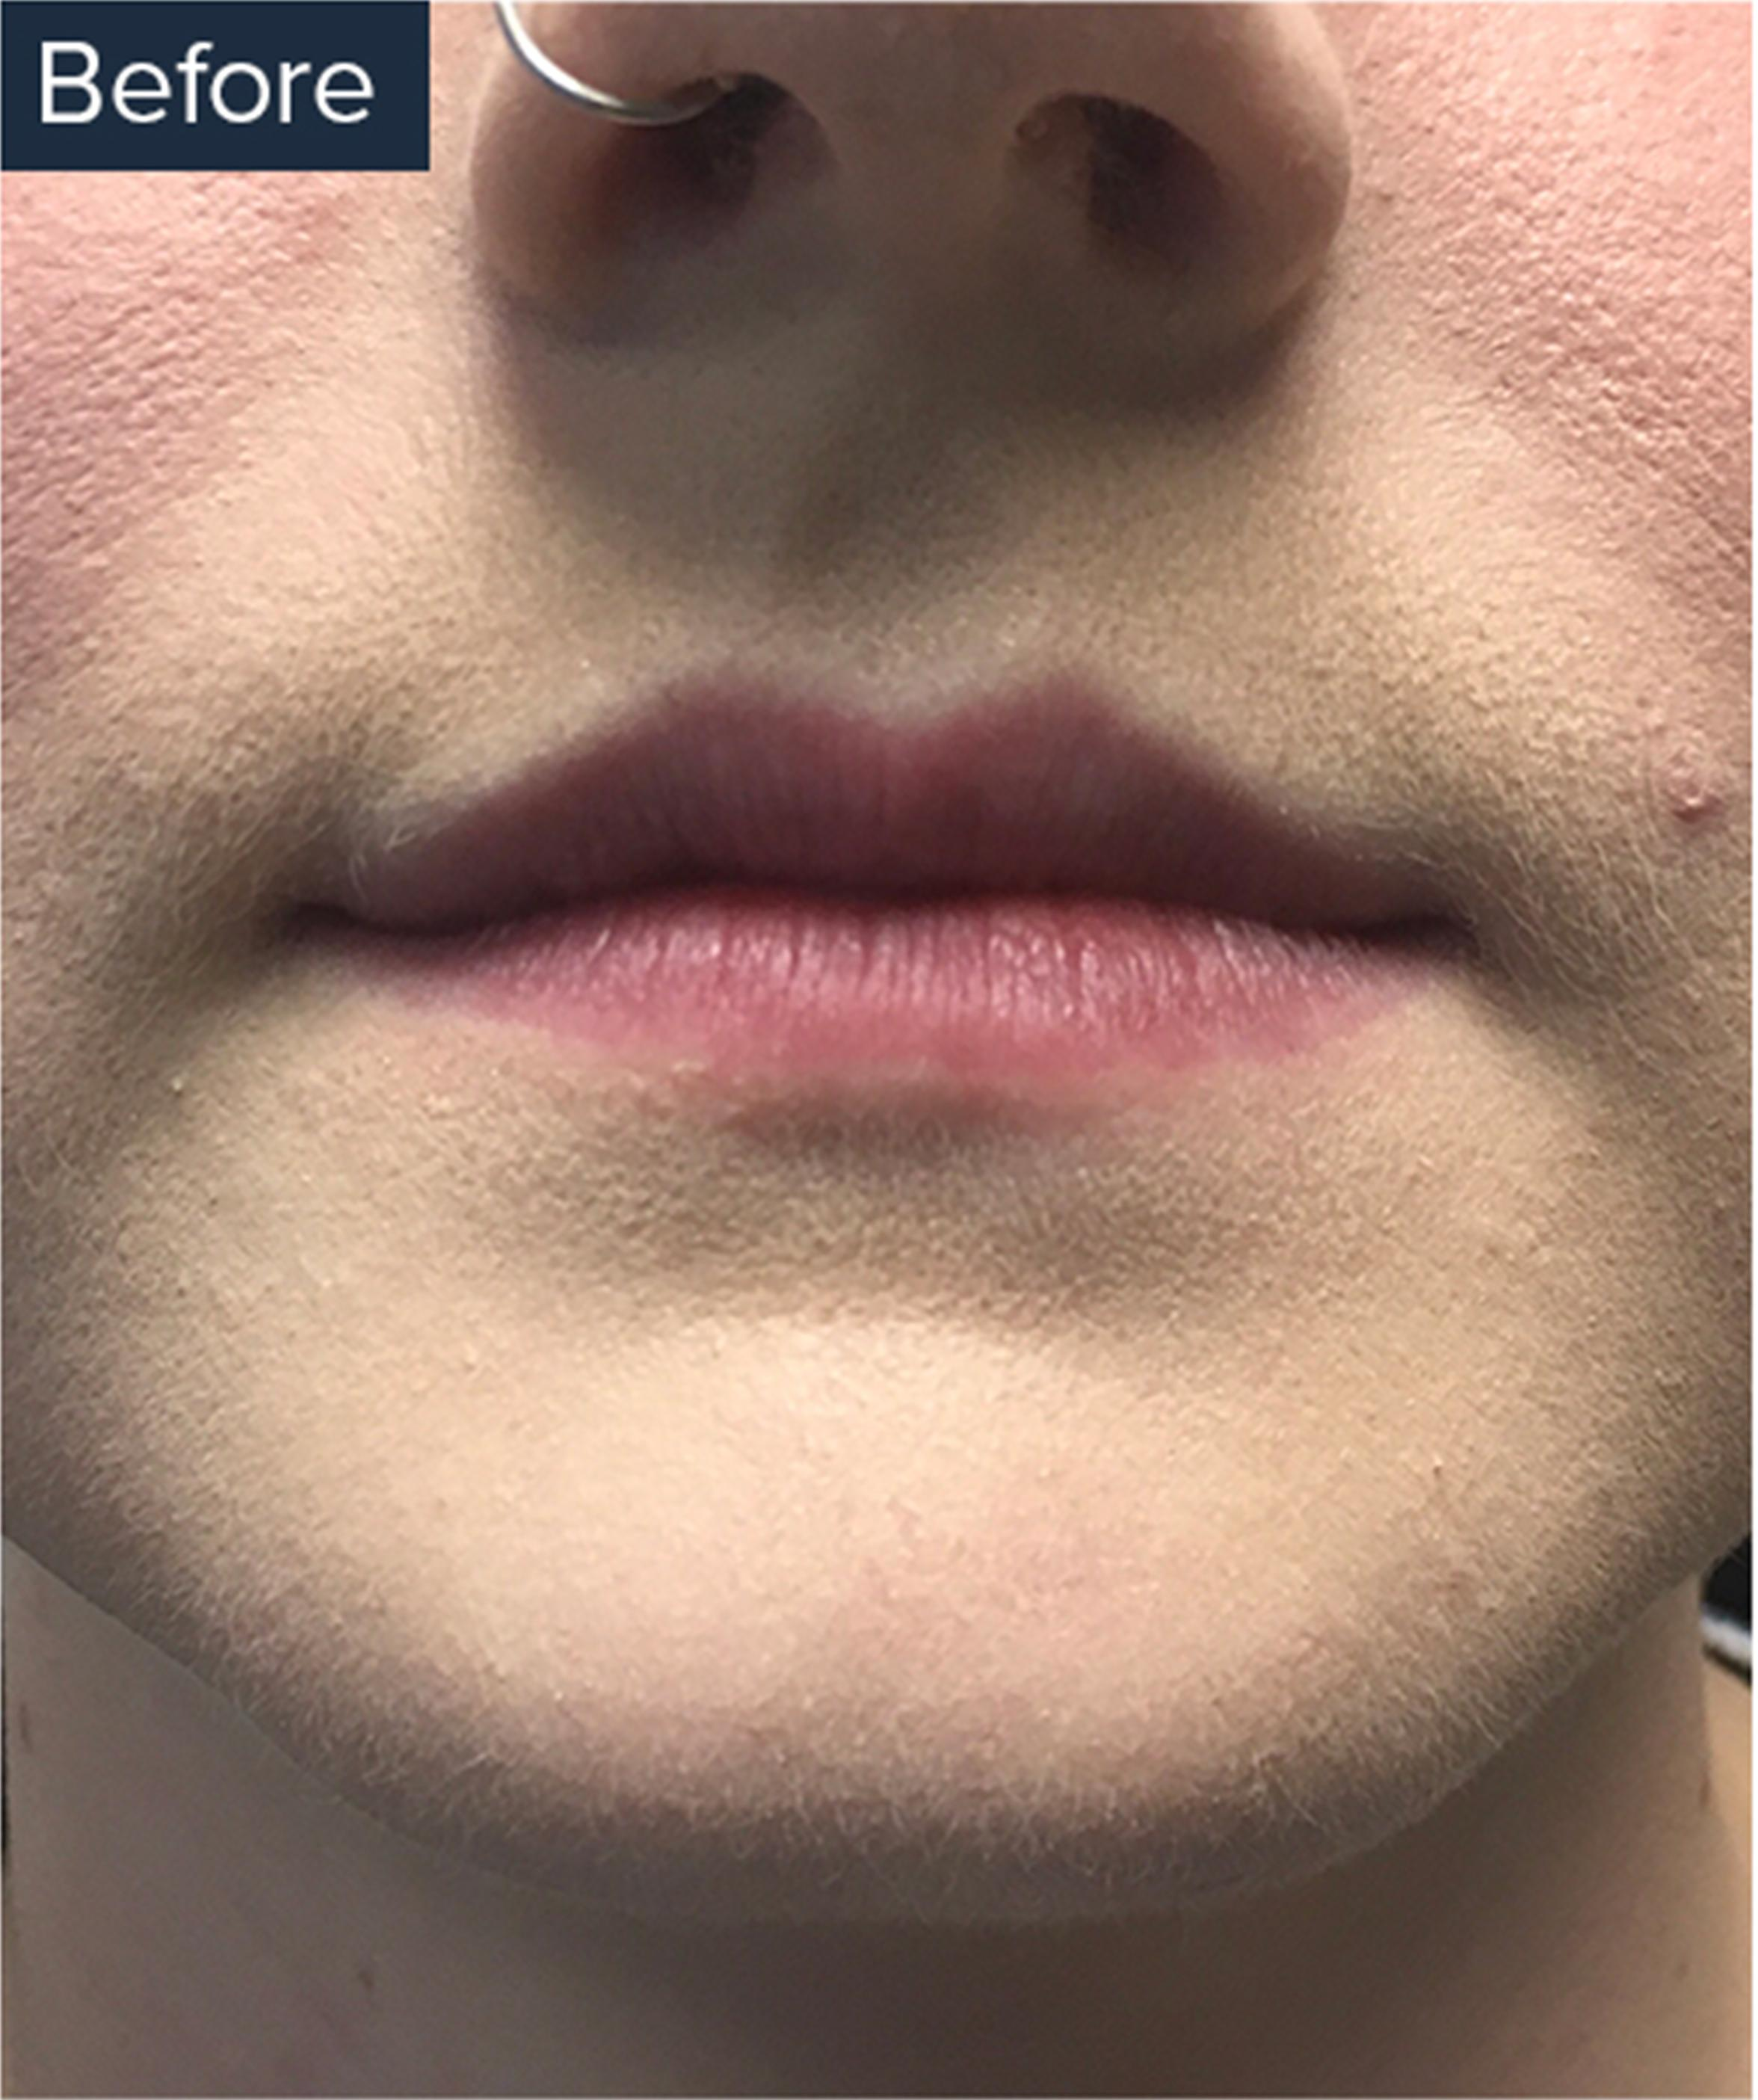 A Before Image Of A Patient Who Received Lip Injections